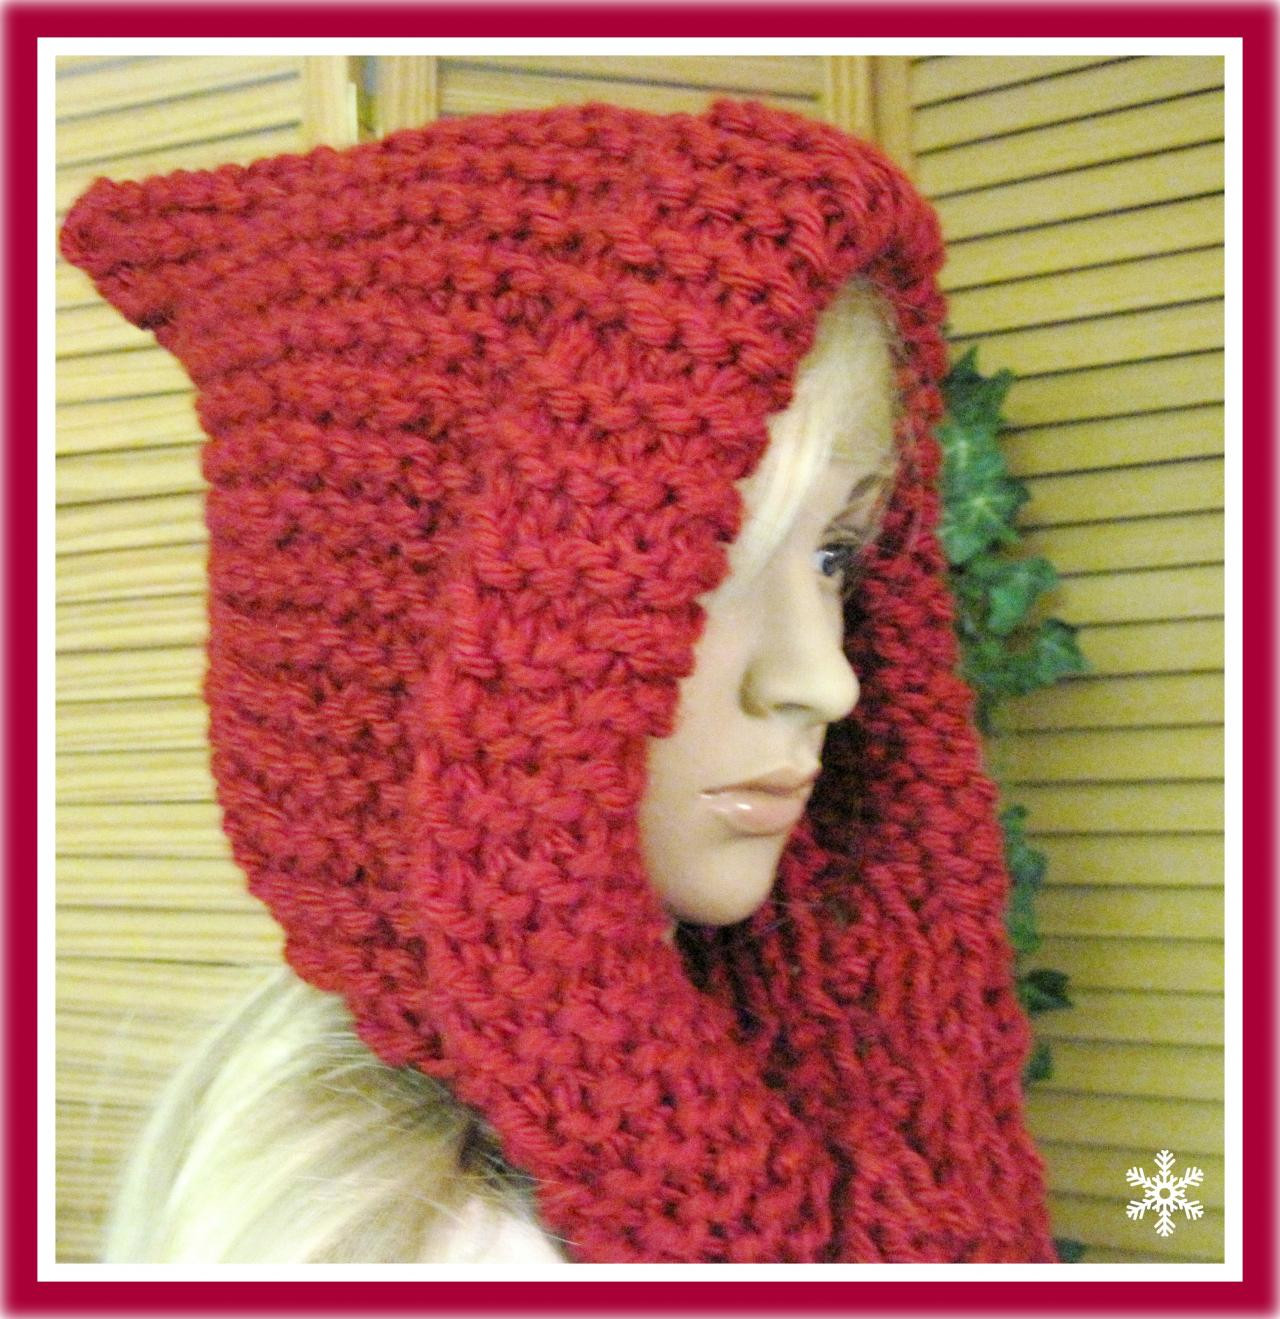 Little Red Riding Hood Hooded Scarf In Bulky Yarn Knitting